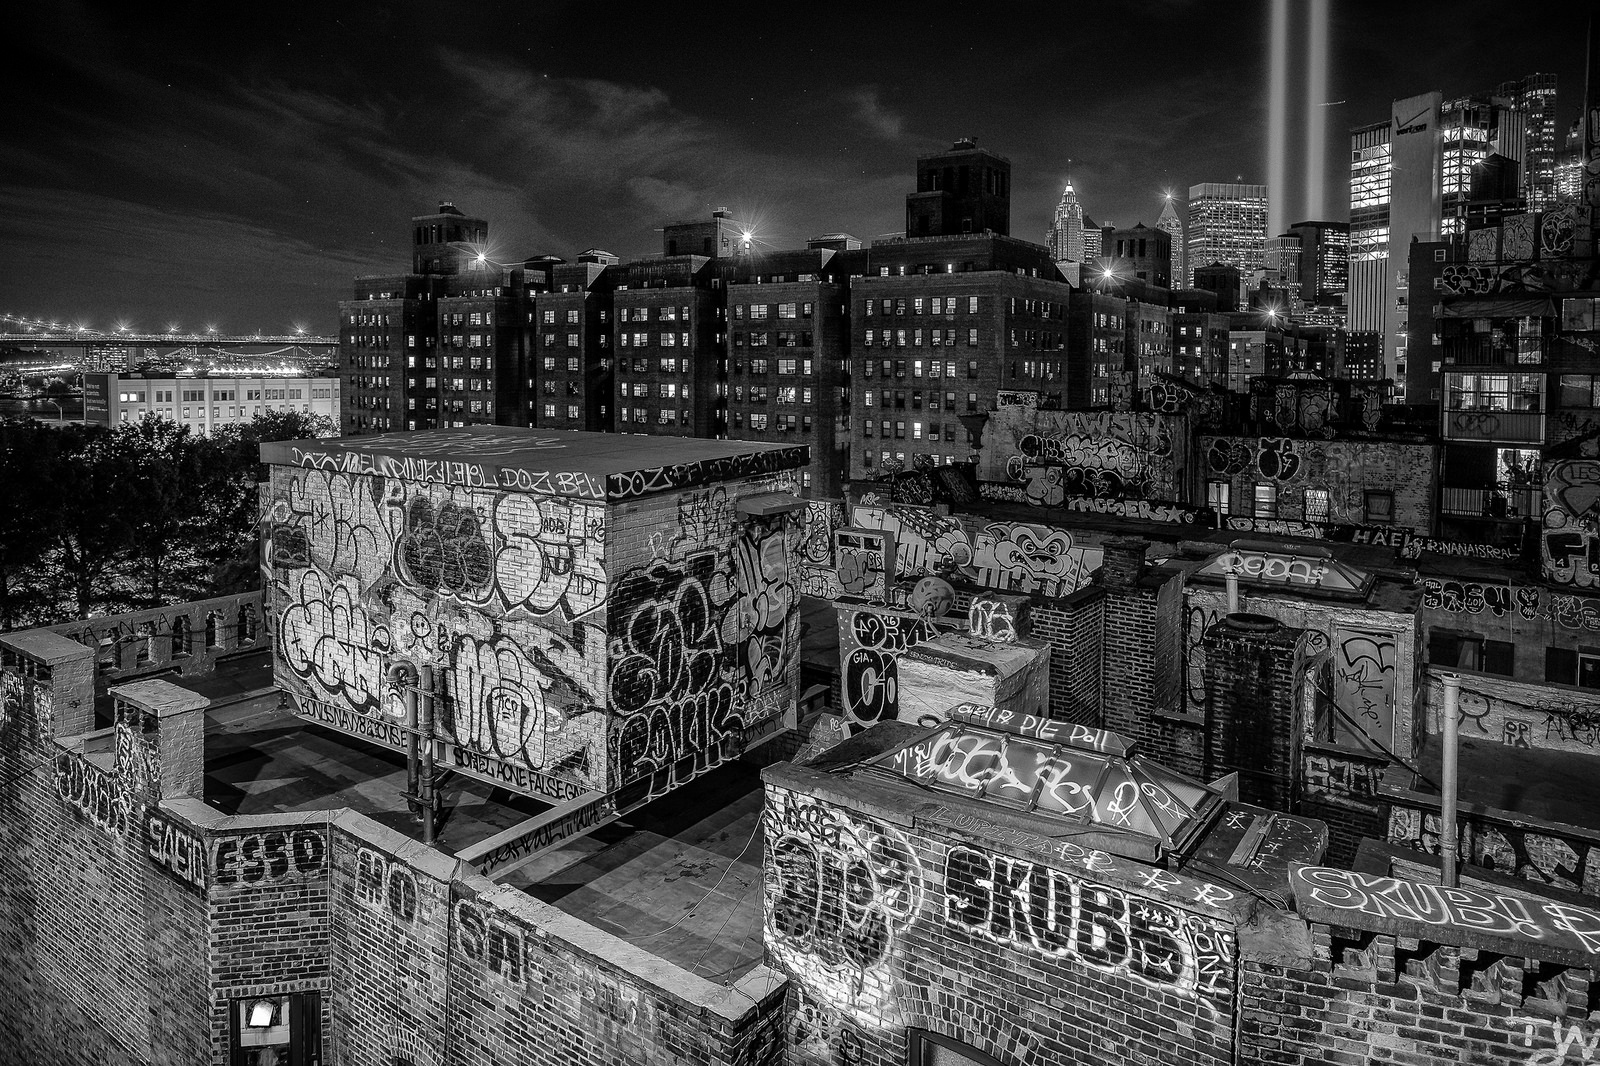 """""""Tribute in Light over Chinatown"""" September 11, 2016. New York City  Fujifilm XPro1, 14mm, f/4, 2s, ISO 200"""